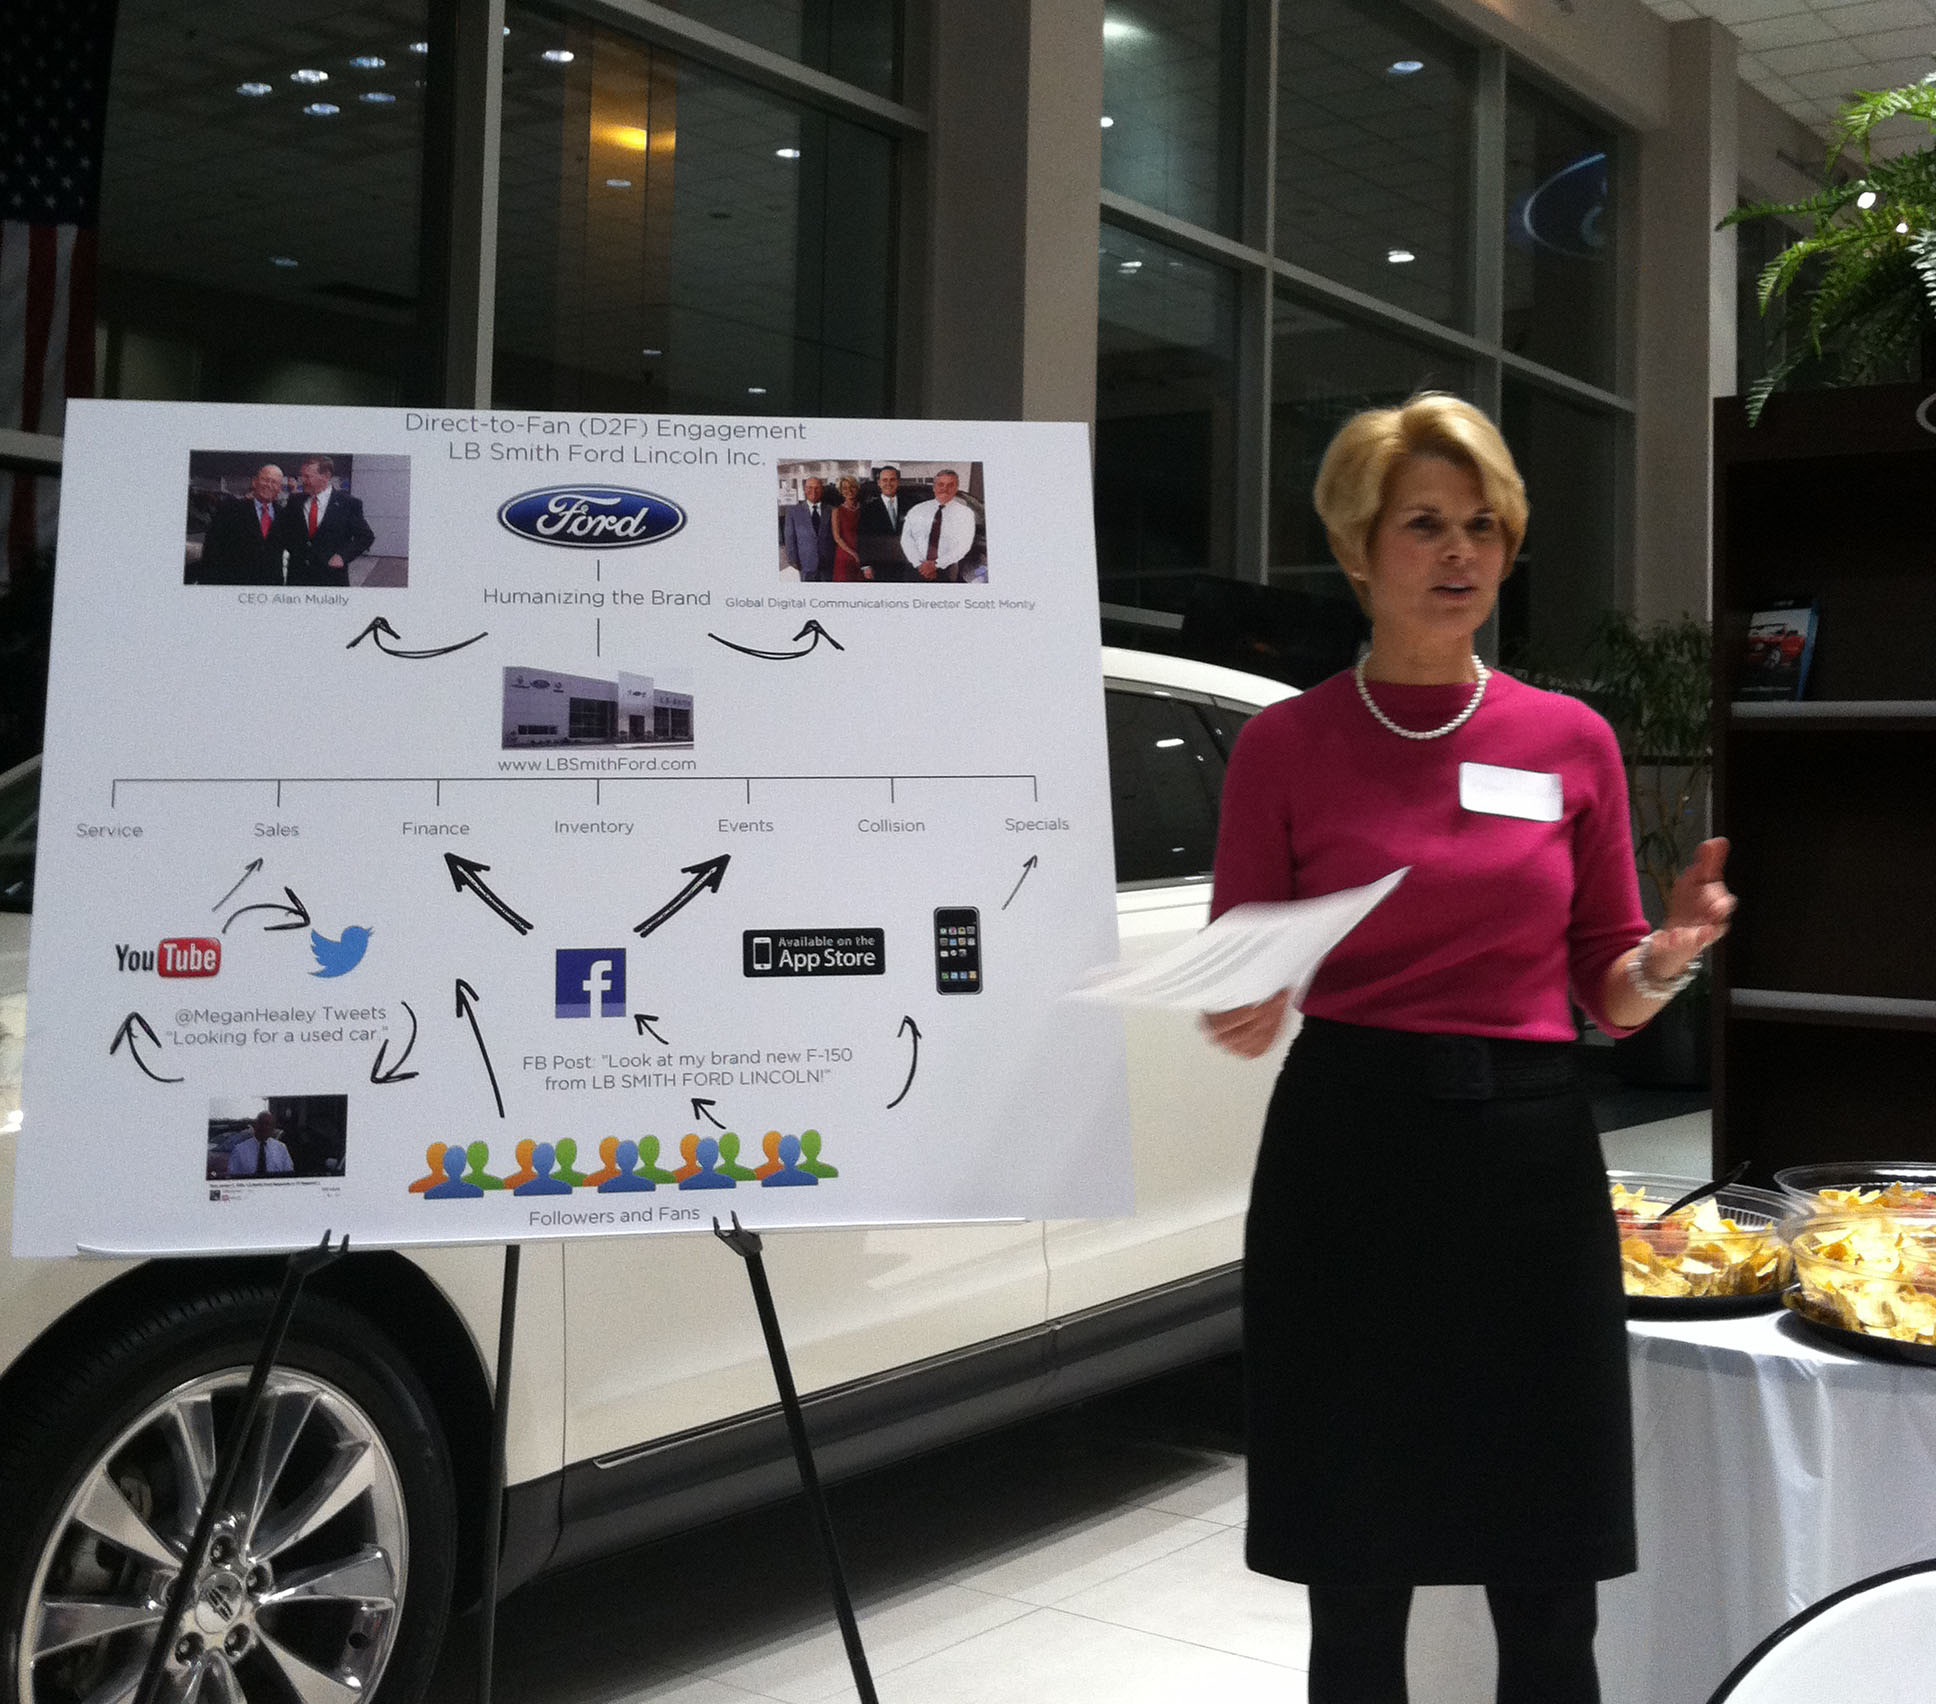 AnneDGallaher THE SOCIAL CMO Blog - Lb smith ford car show